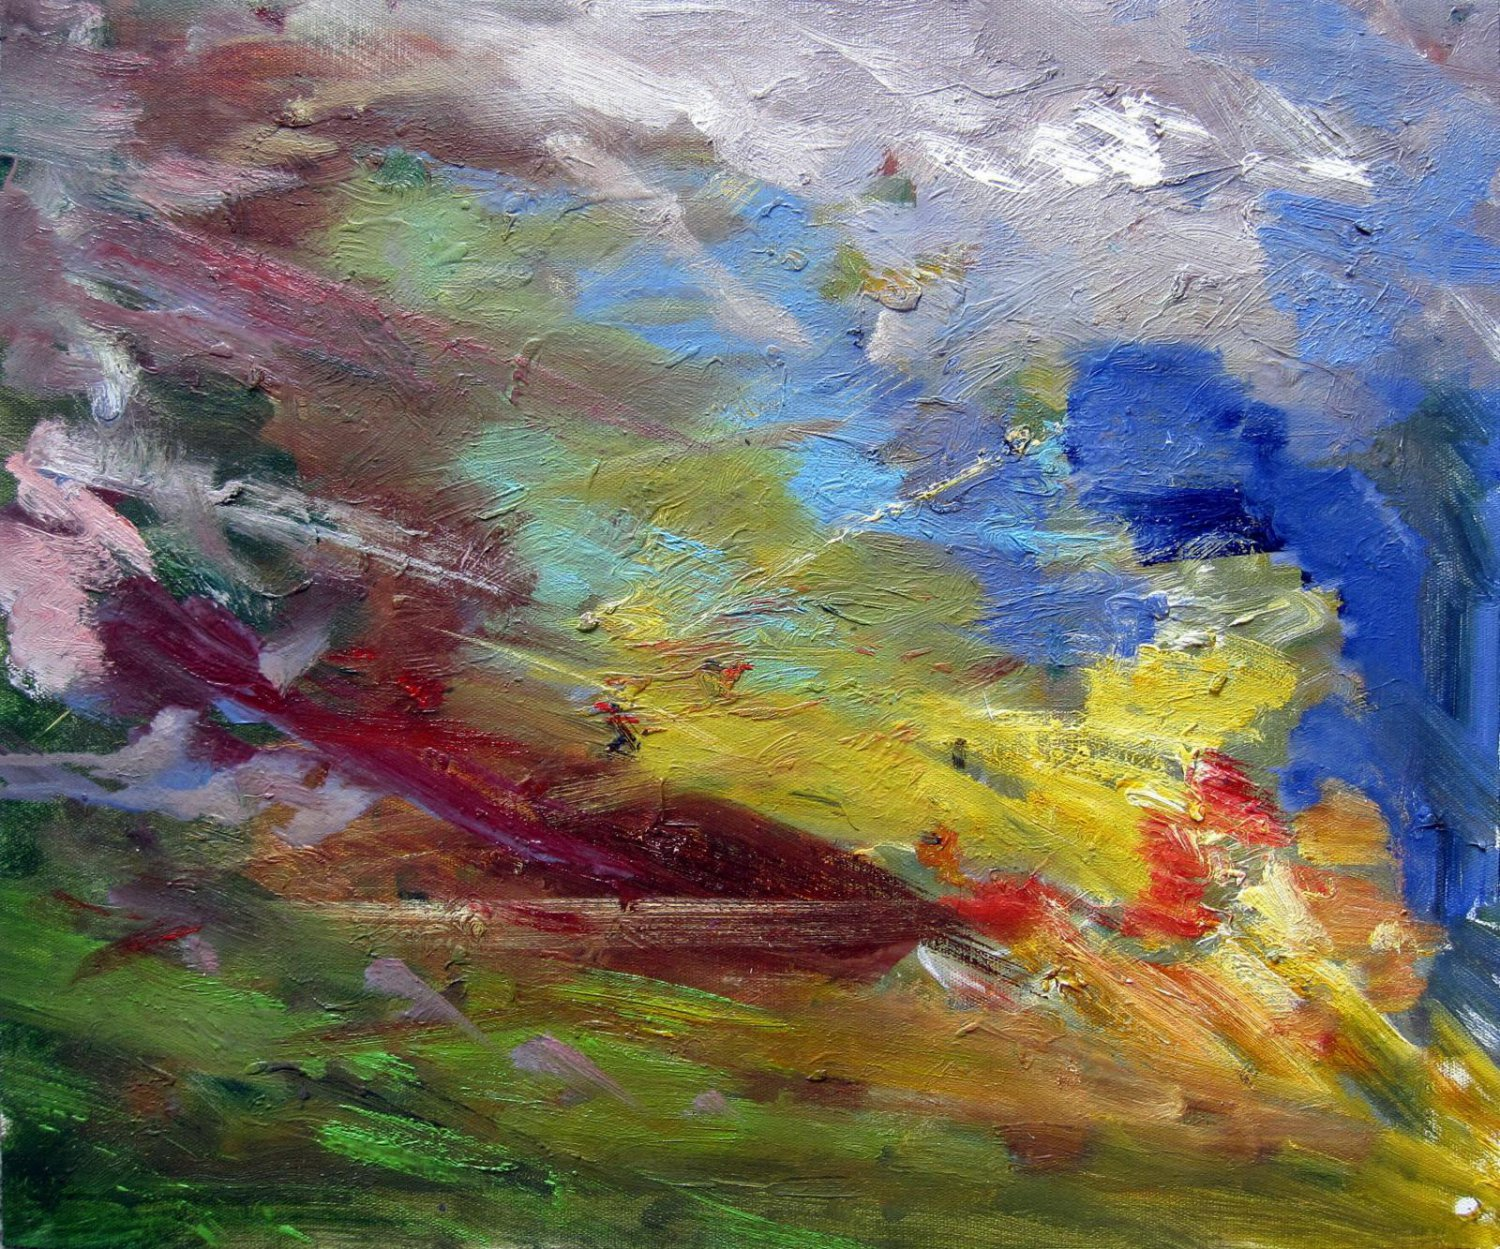 Abstract 20x24 in. stretched Oil Painting Canvas Art Wall Decor modern314